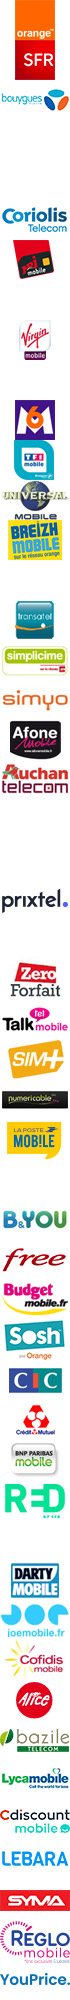 forfait Joe Mobile Personnalisable - 1 Go illimit� Sans engagement